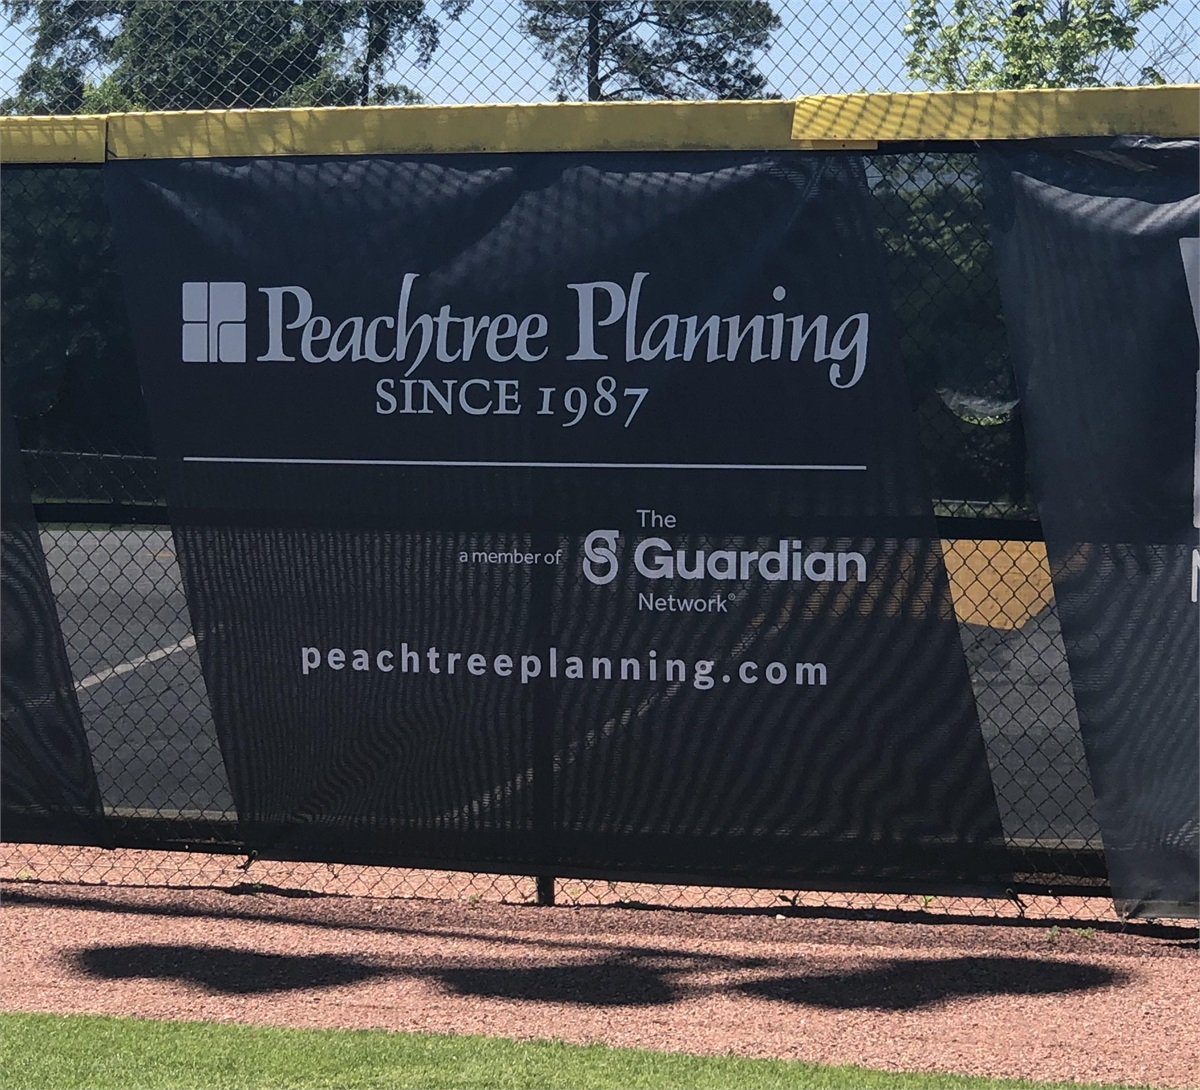 Peachtree Planning is a Proud Sponsor of NYO Sports